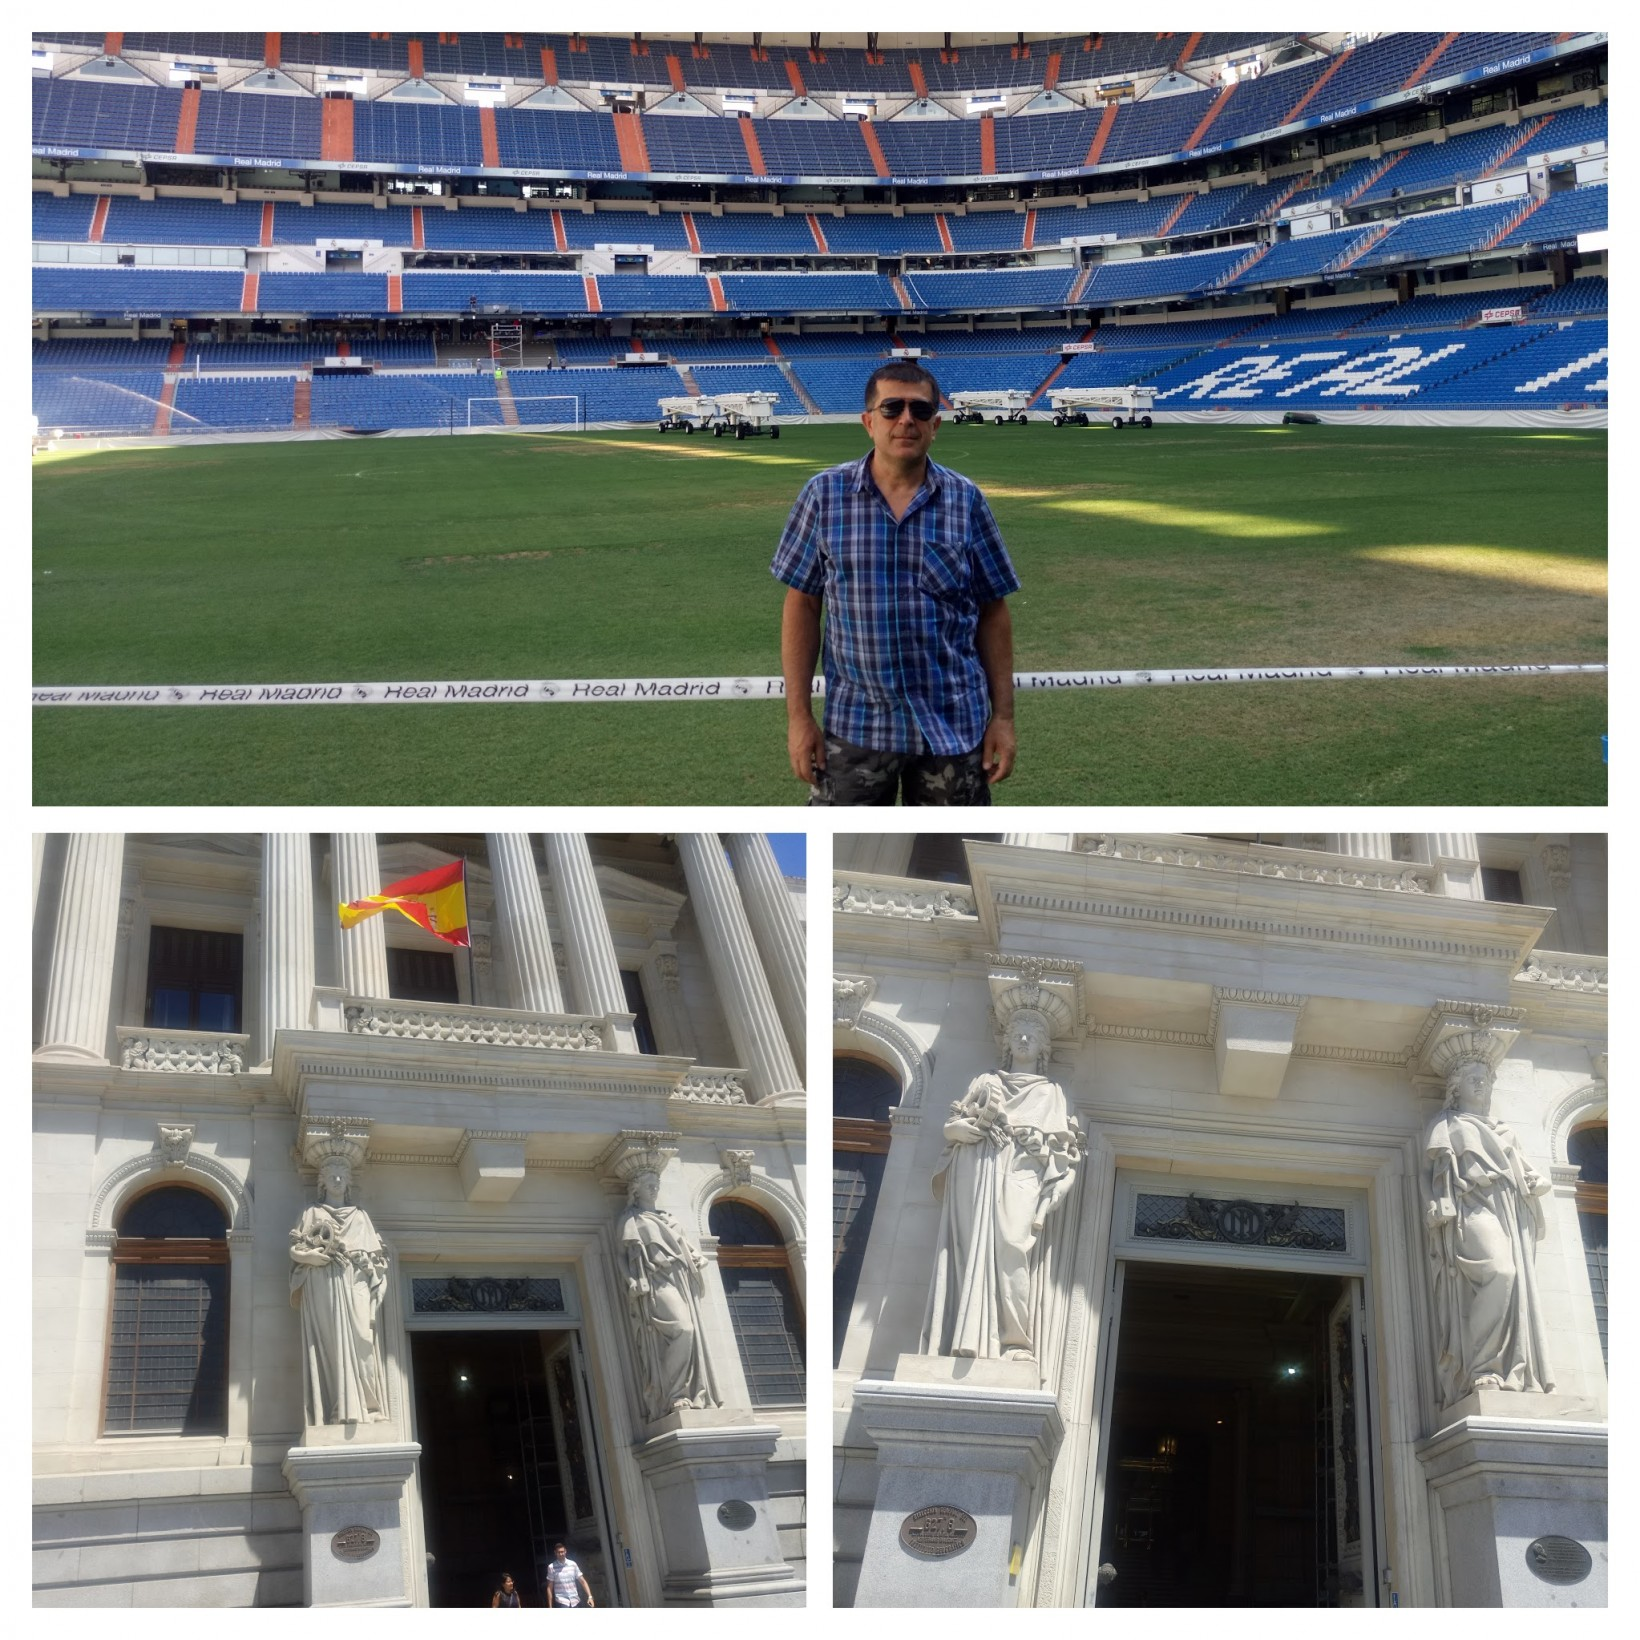 6th day in Madrid (27-07-2017)